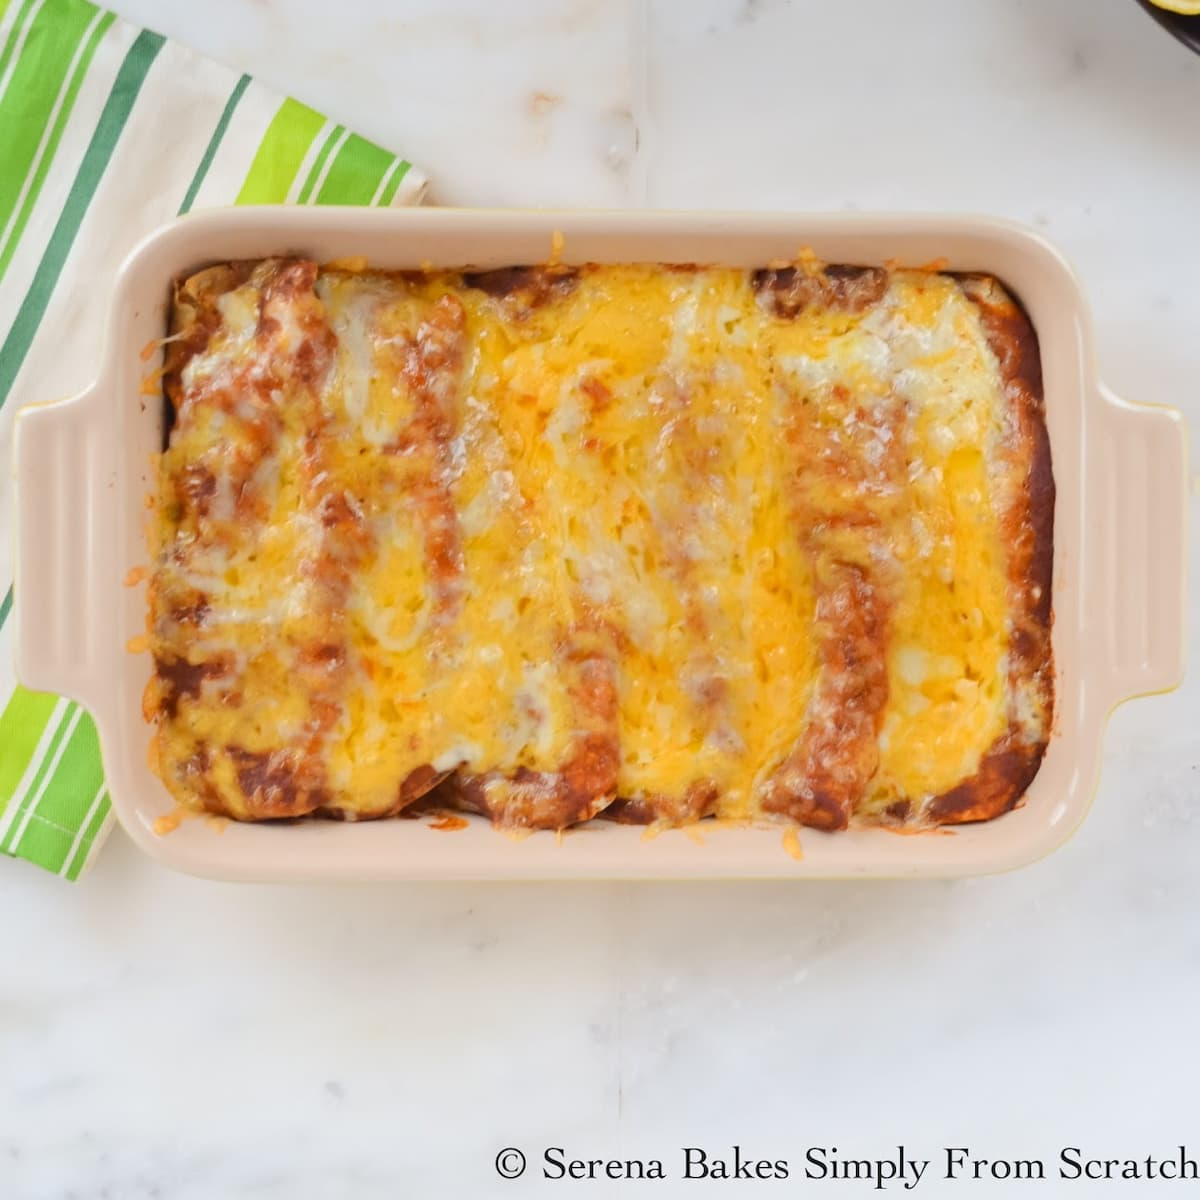 A pan of baked Chicken Enchiladas in Red Sauce.